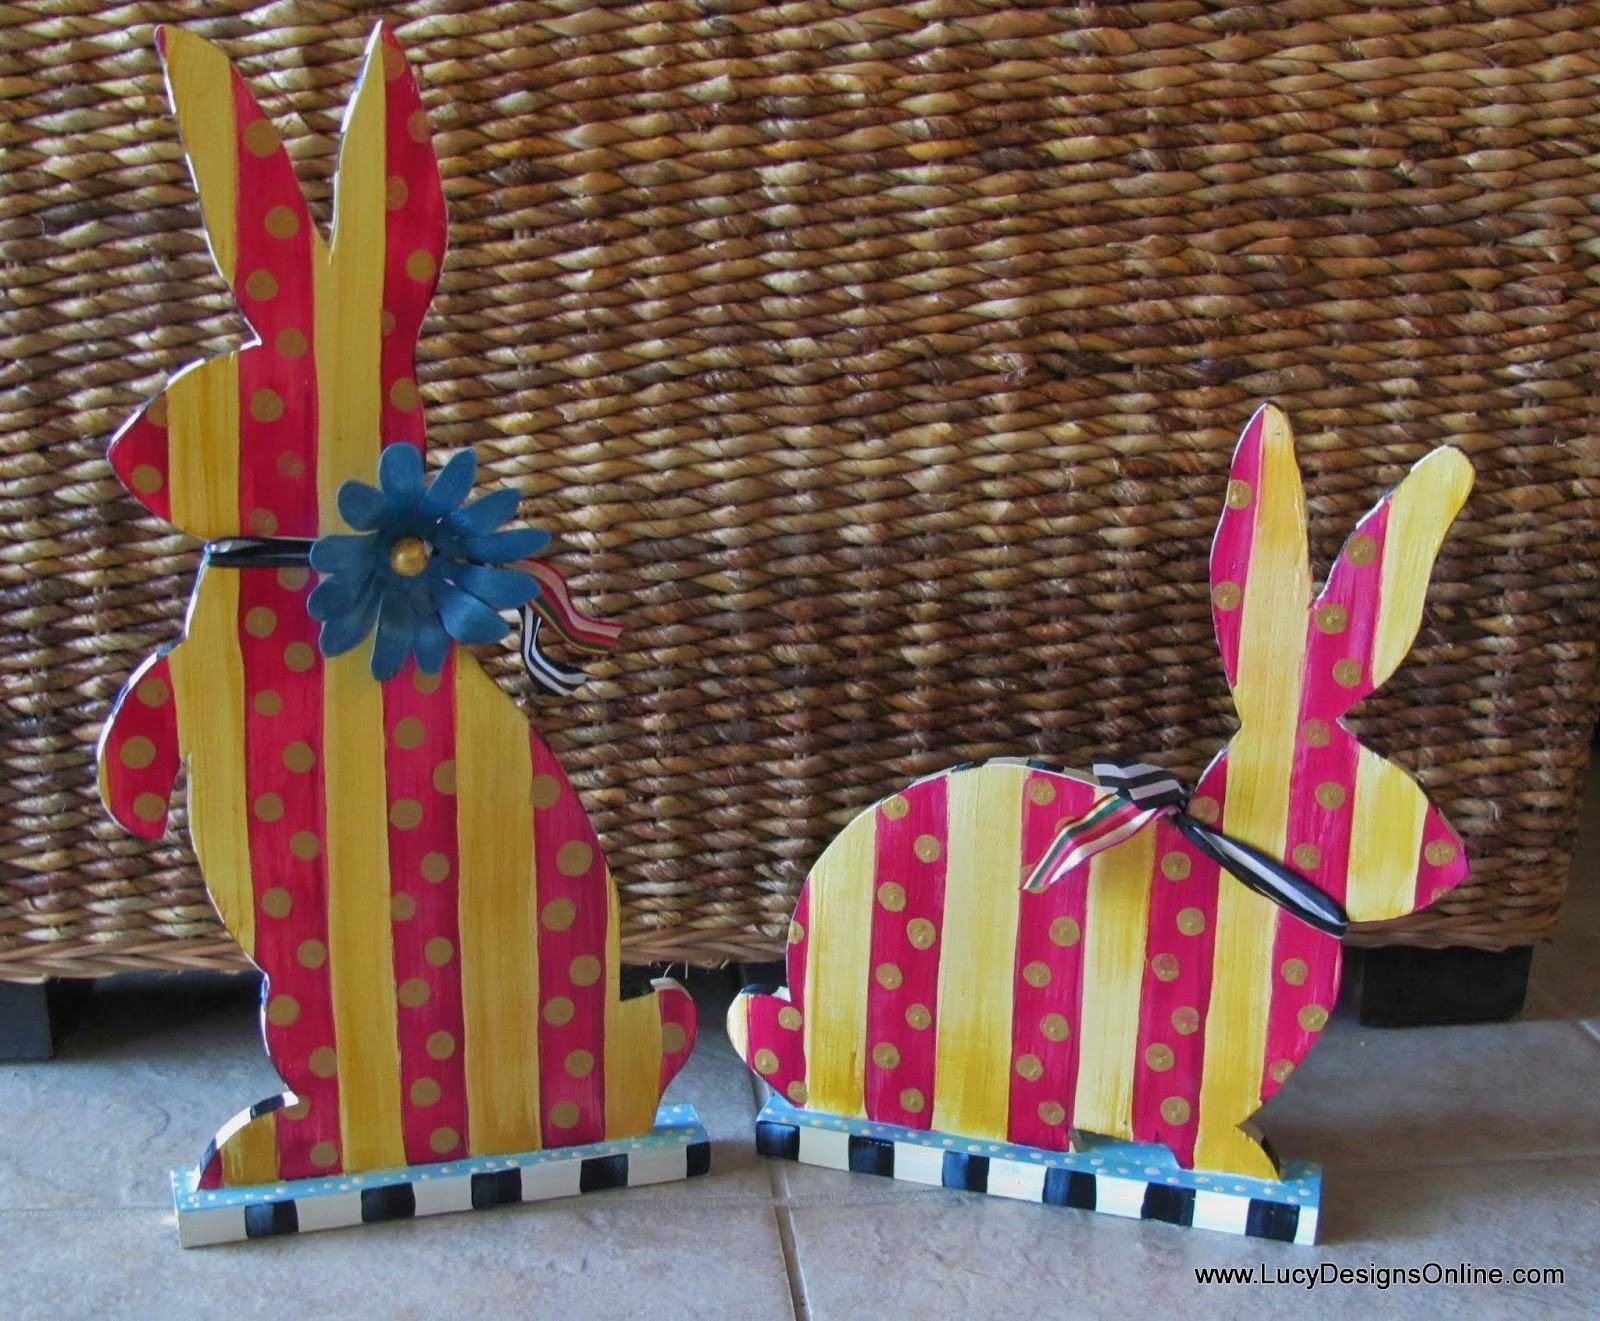 hand painted striped bunny rabbit